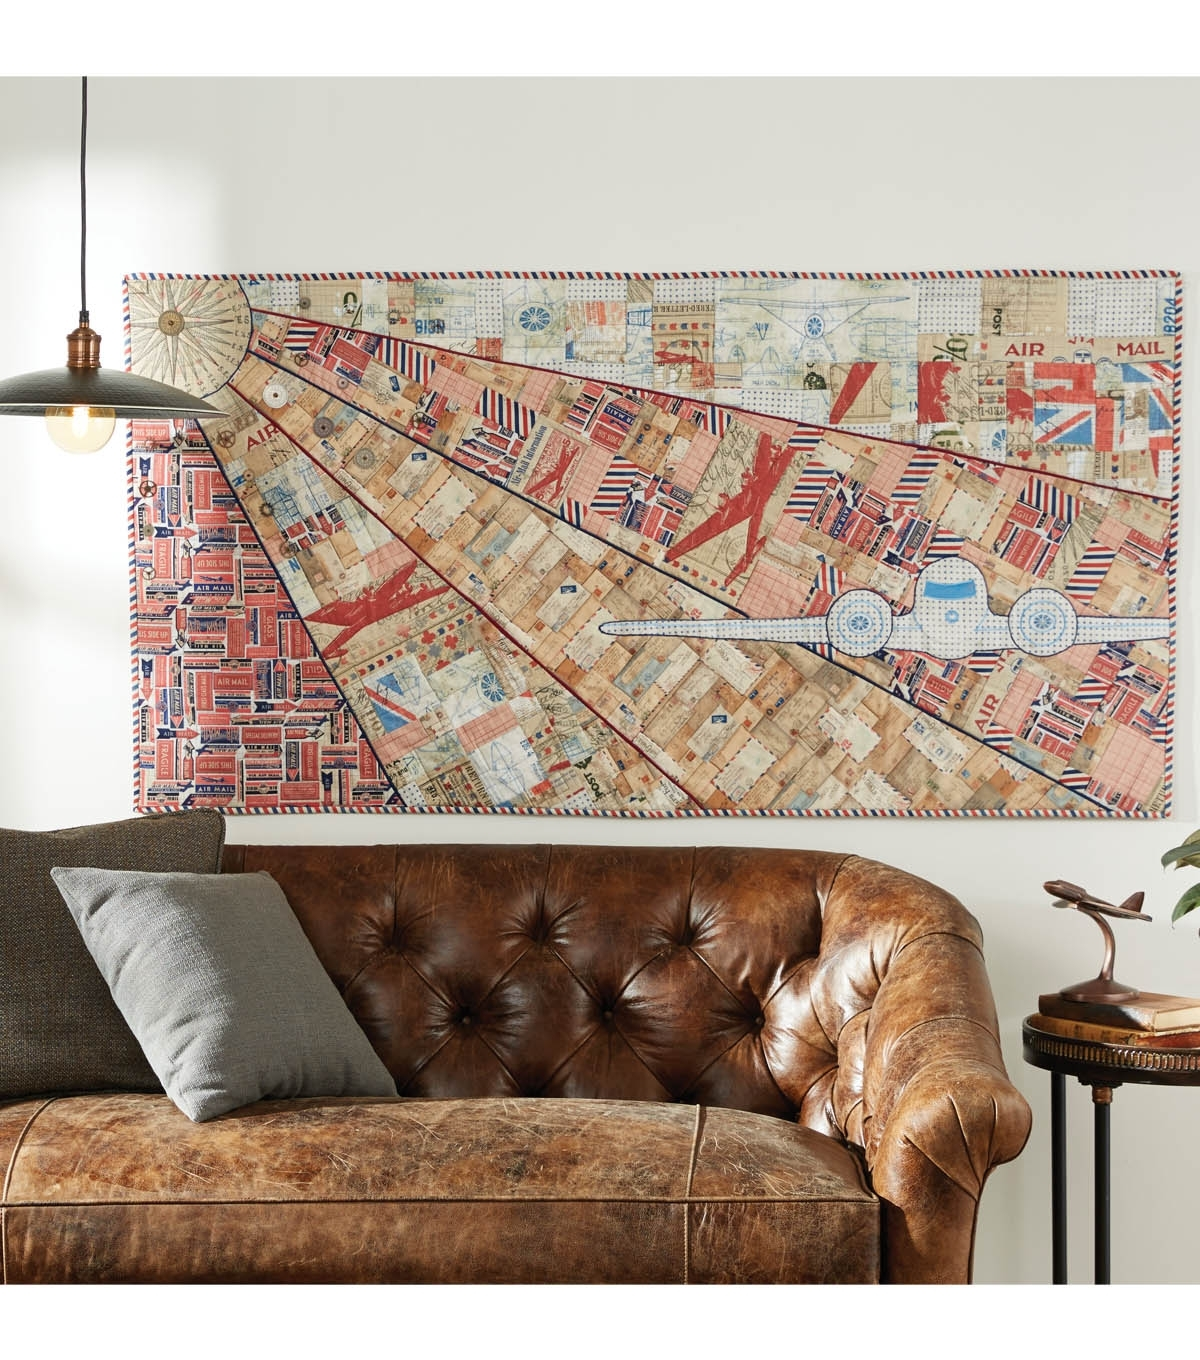 Tim Holtz Airplane Fabric Wall Hanging | Joann With Regard To Most Current Joann Fabric Wall Art (View 8 of 15)